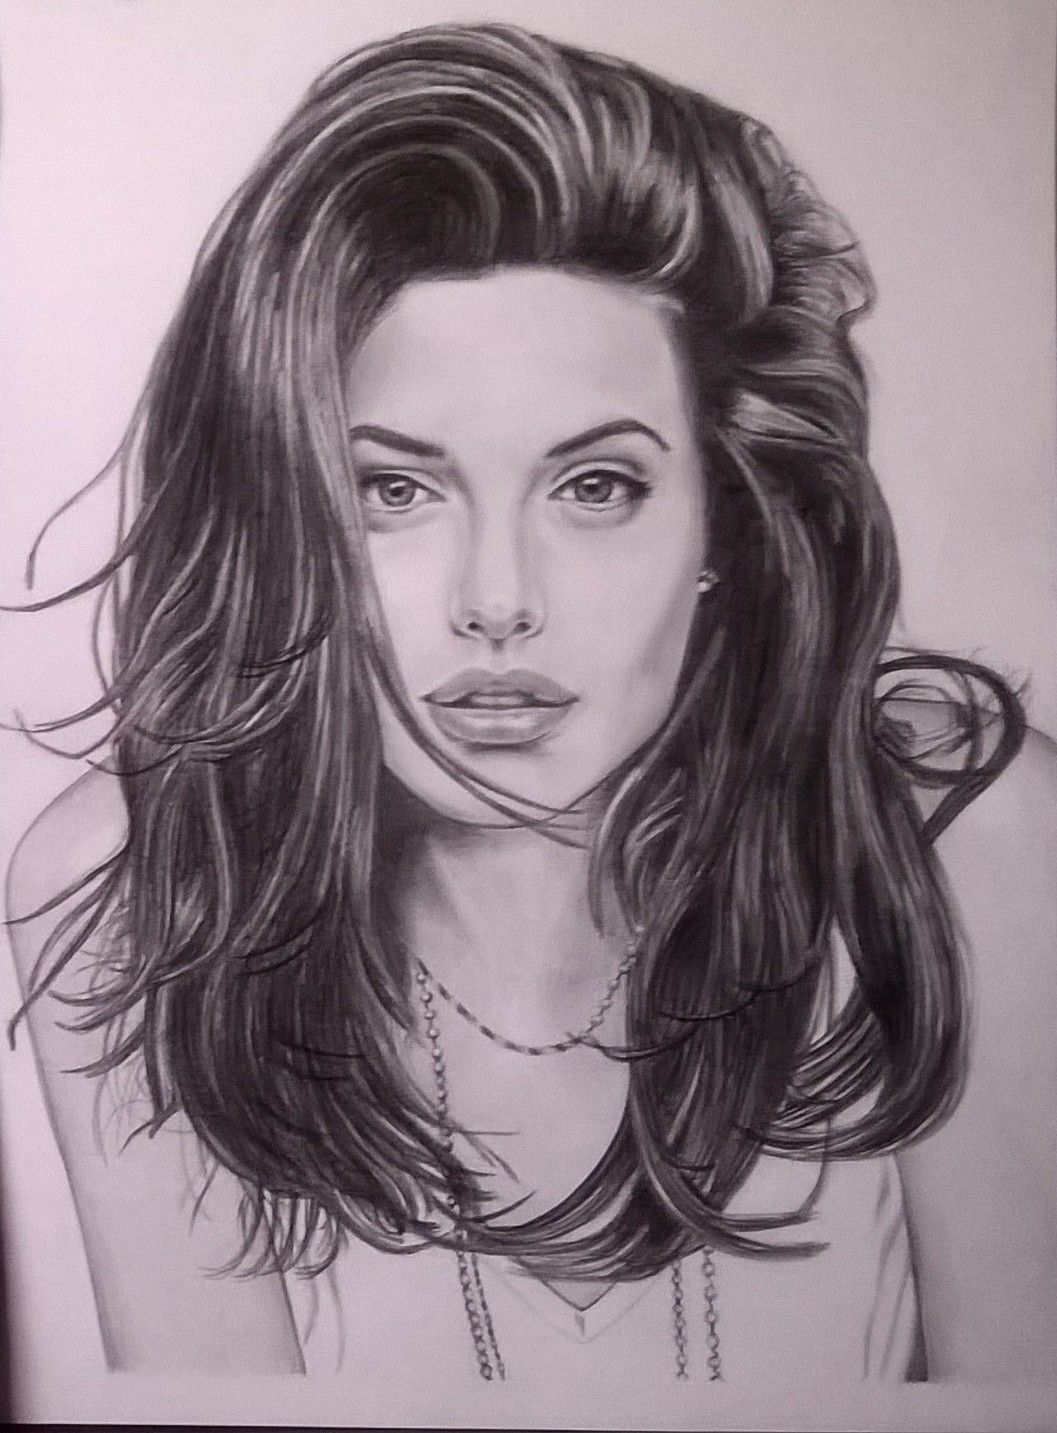 Angelina jolie matita su cartoncino liscio 24x33 love drawings pencil drawings art drawings